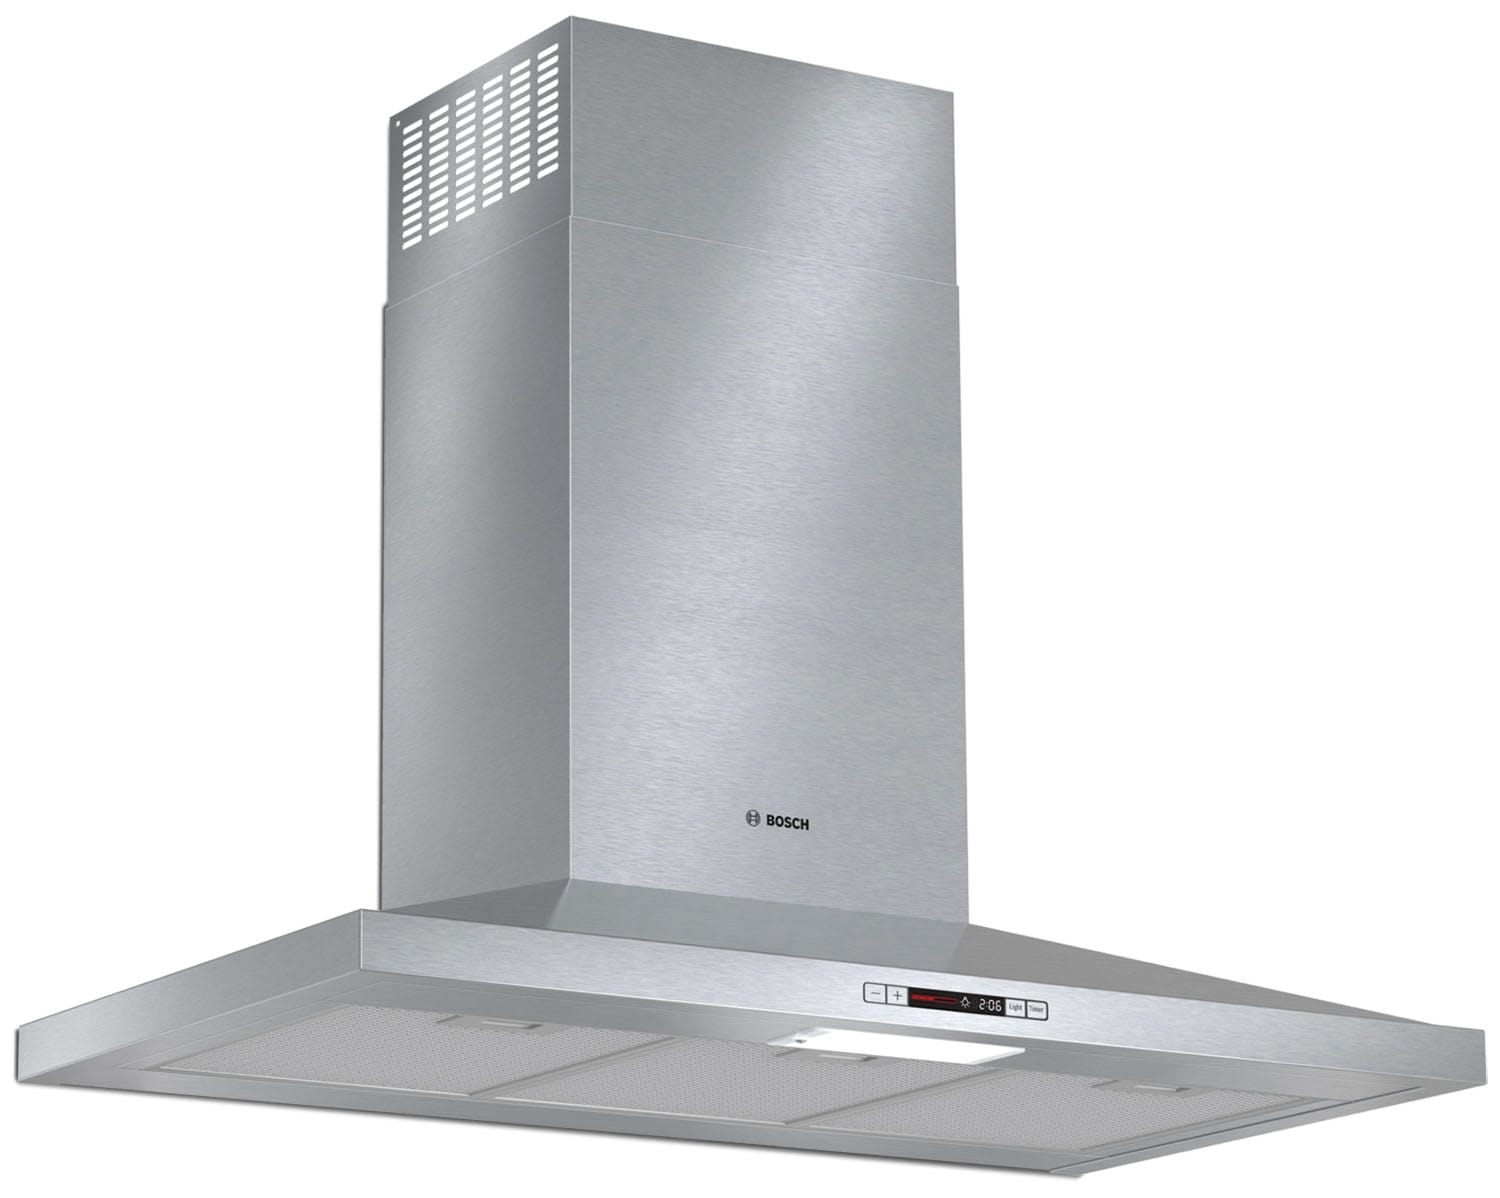 Cooking Products - Bosch Stainless Steel Canopy Range Hood - HCP36E51UC